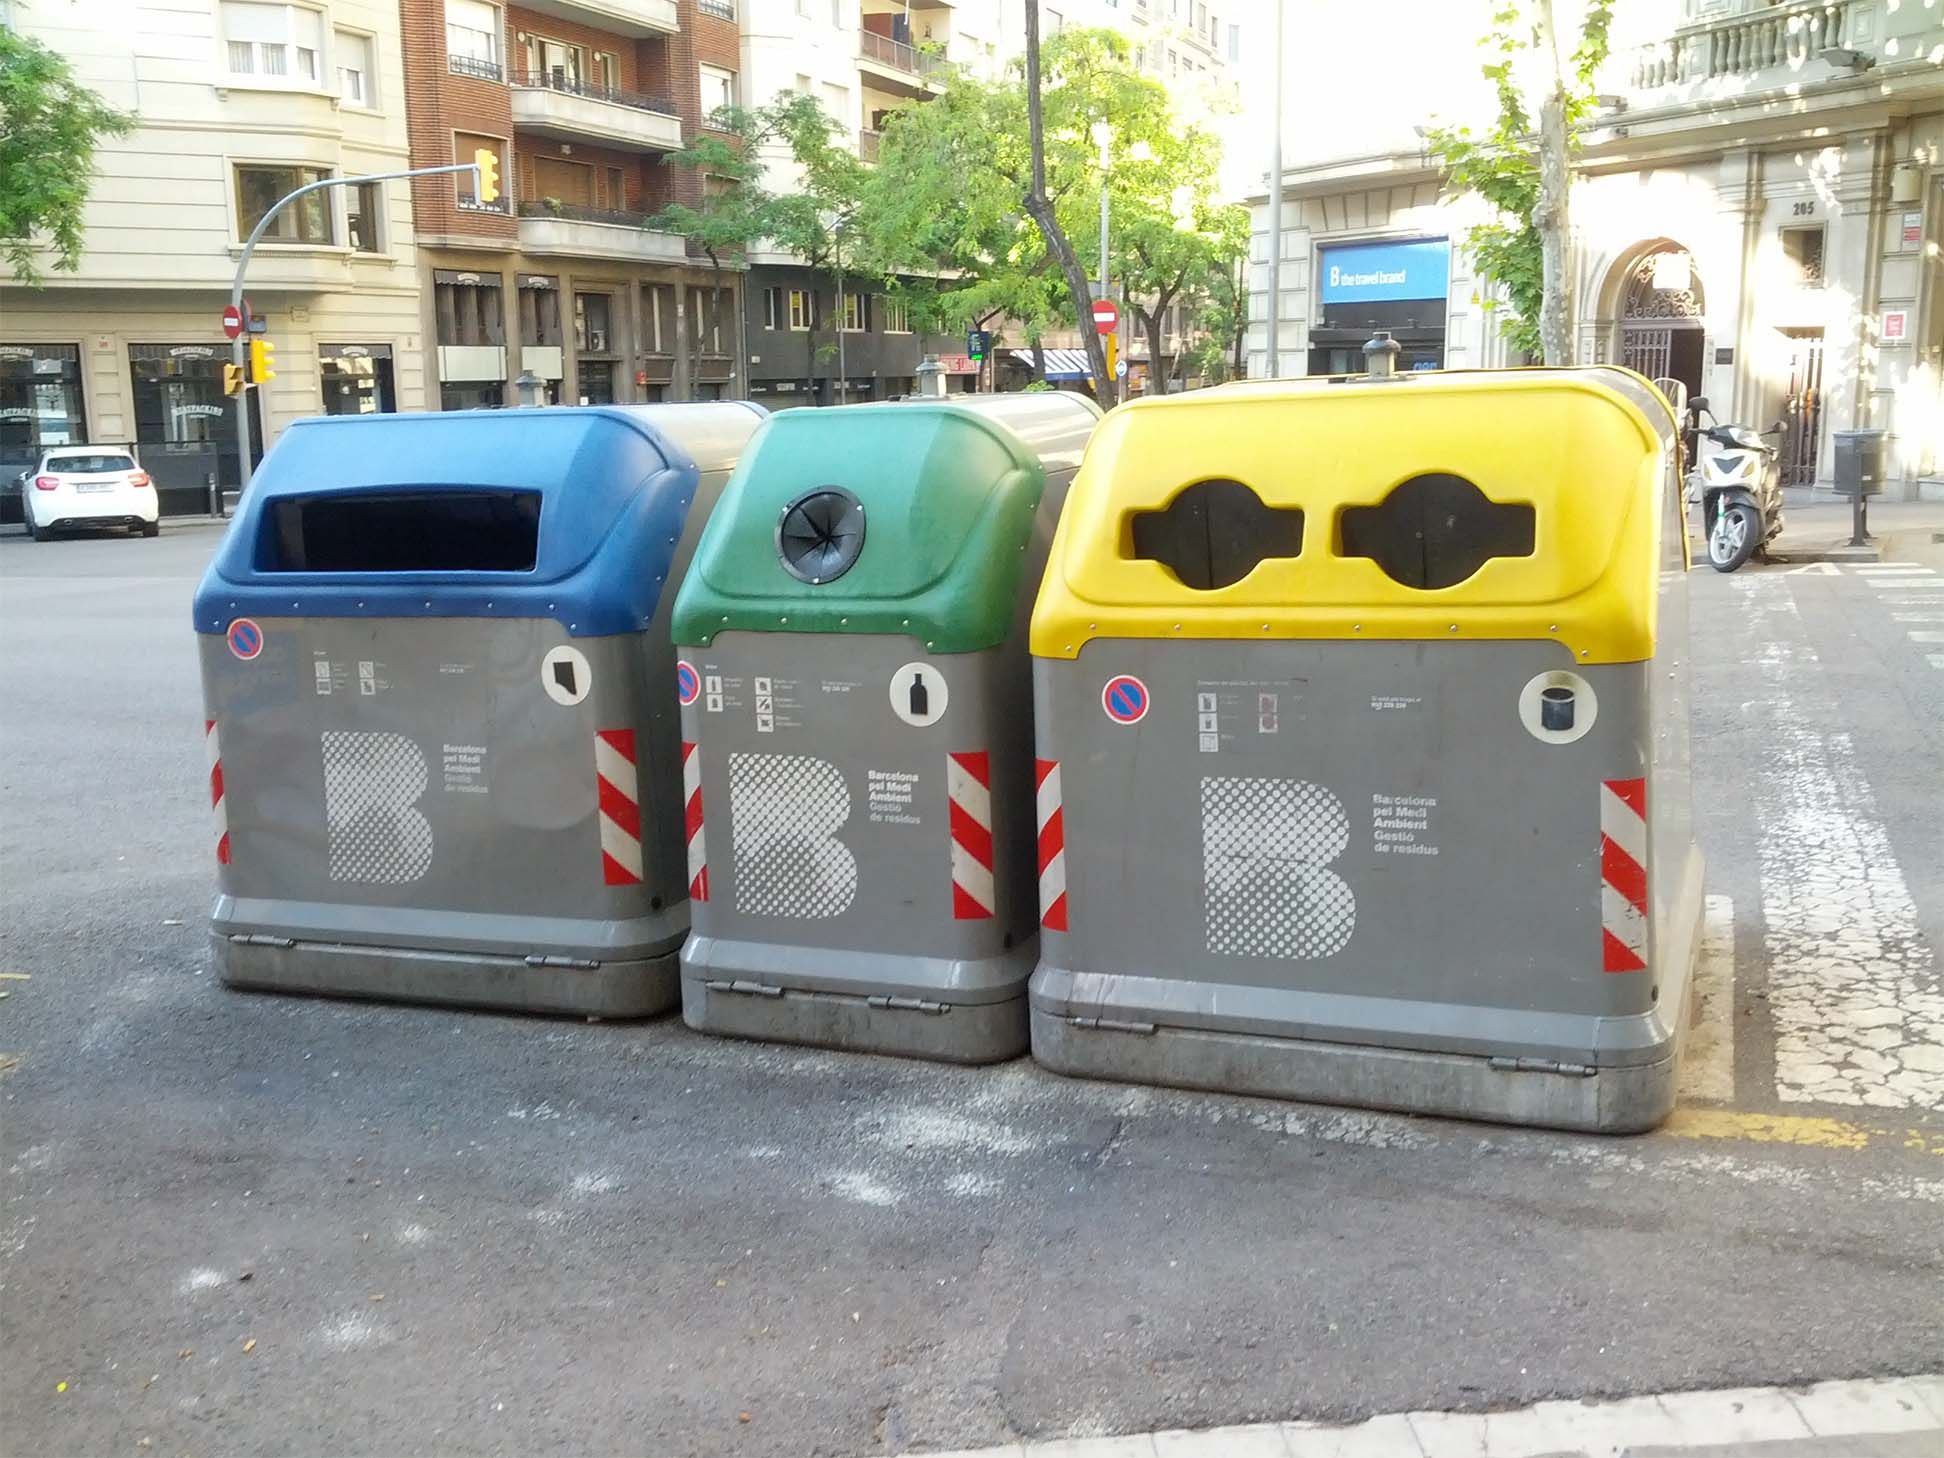 Photo of different-colored trash bins